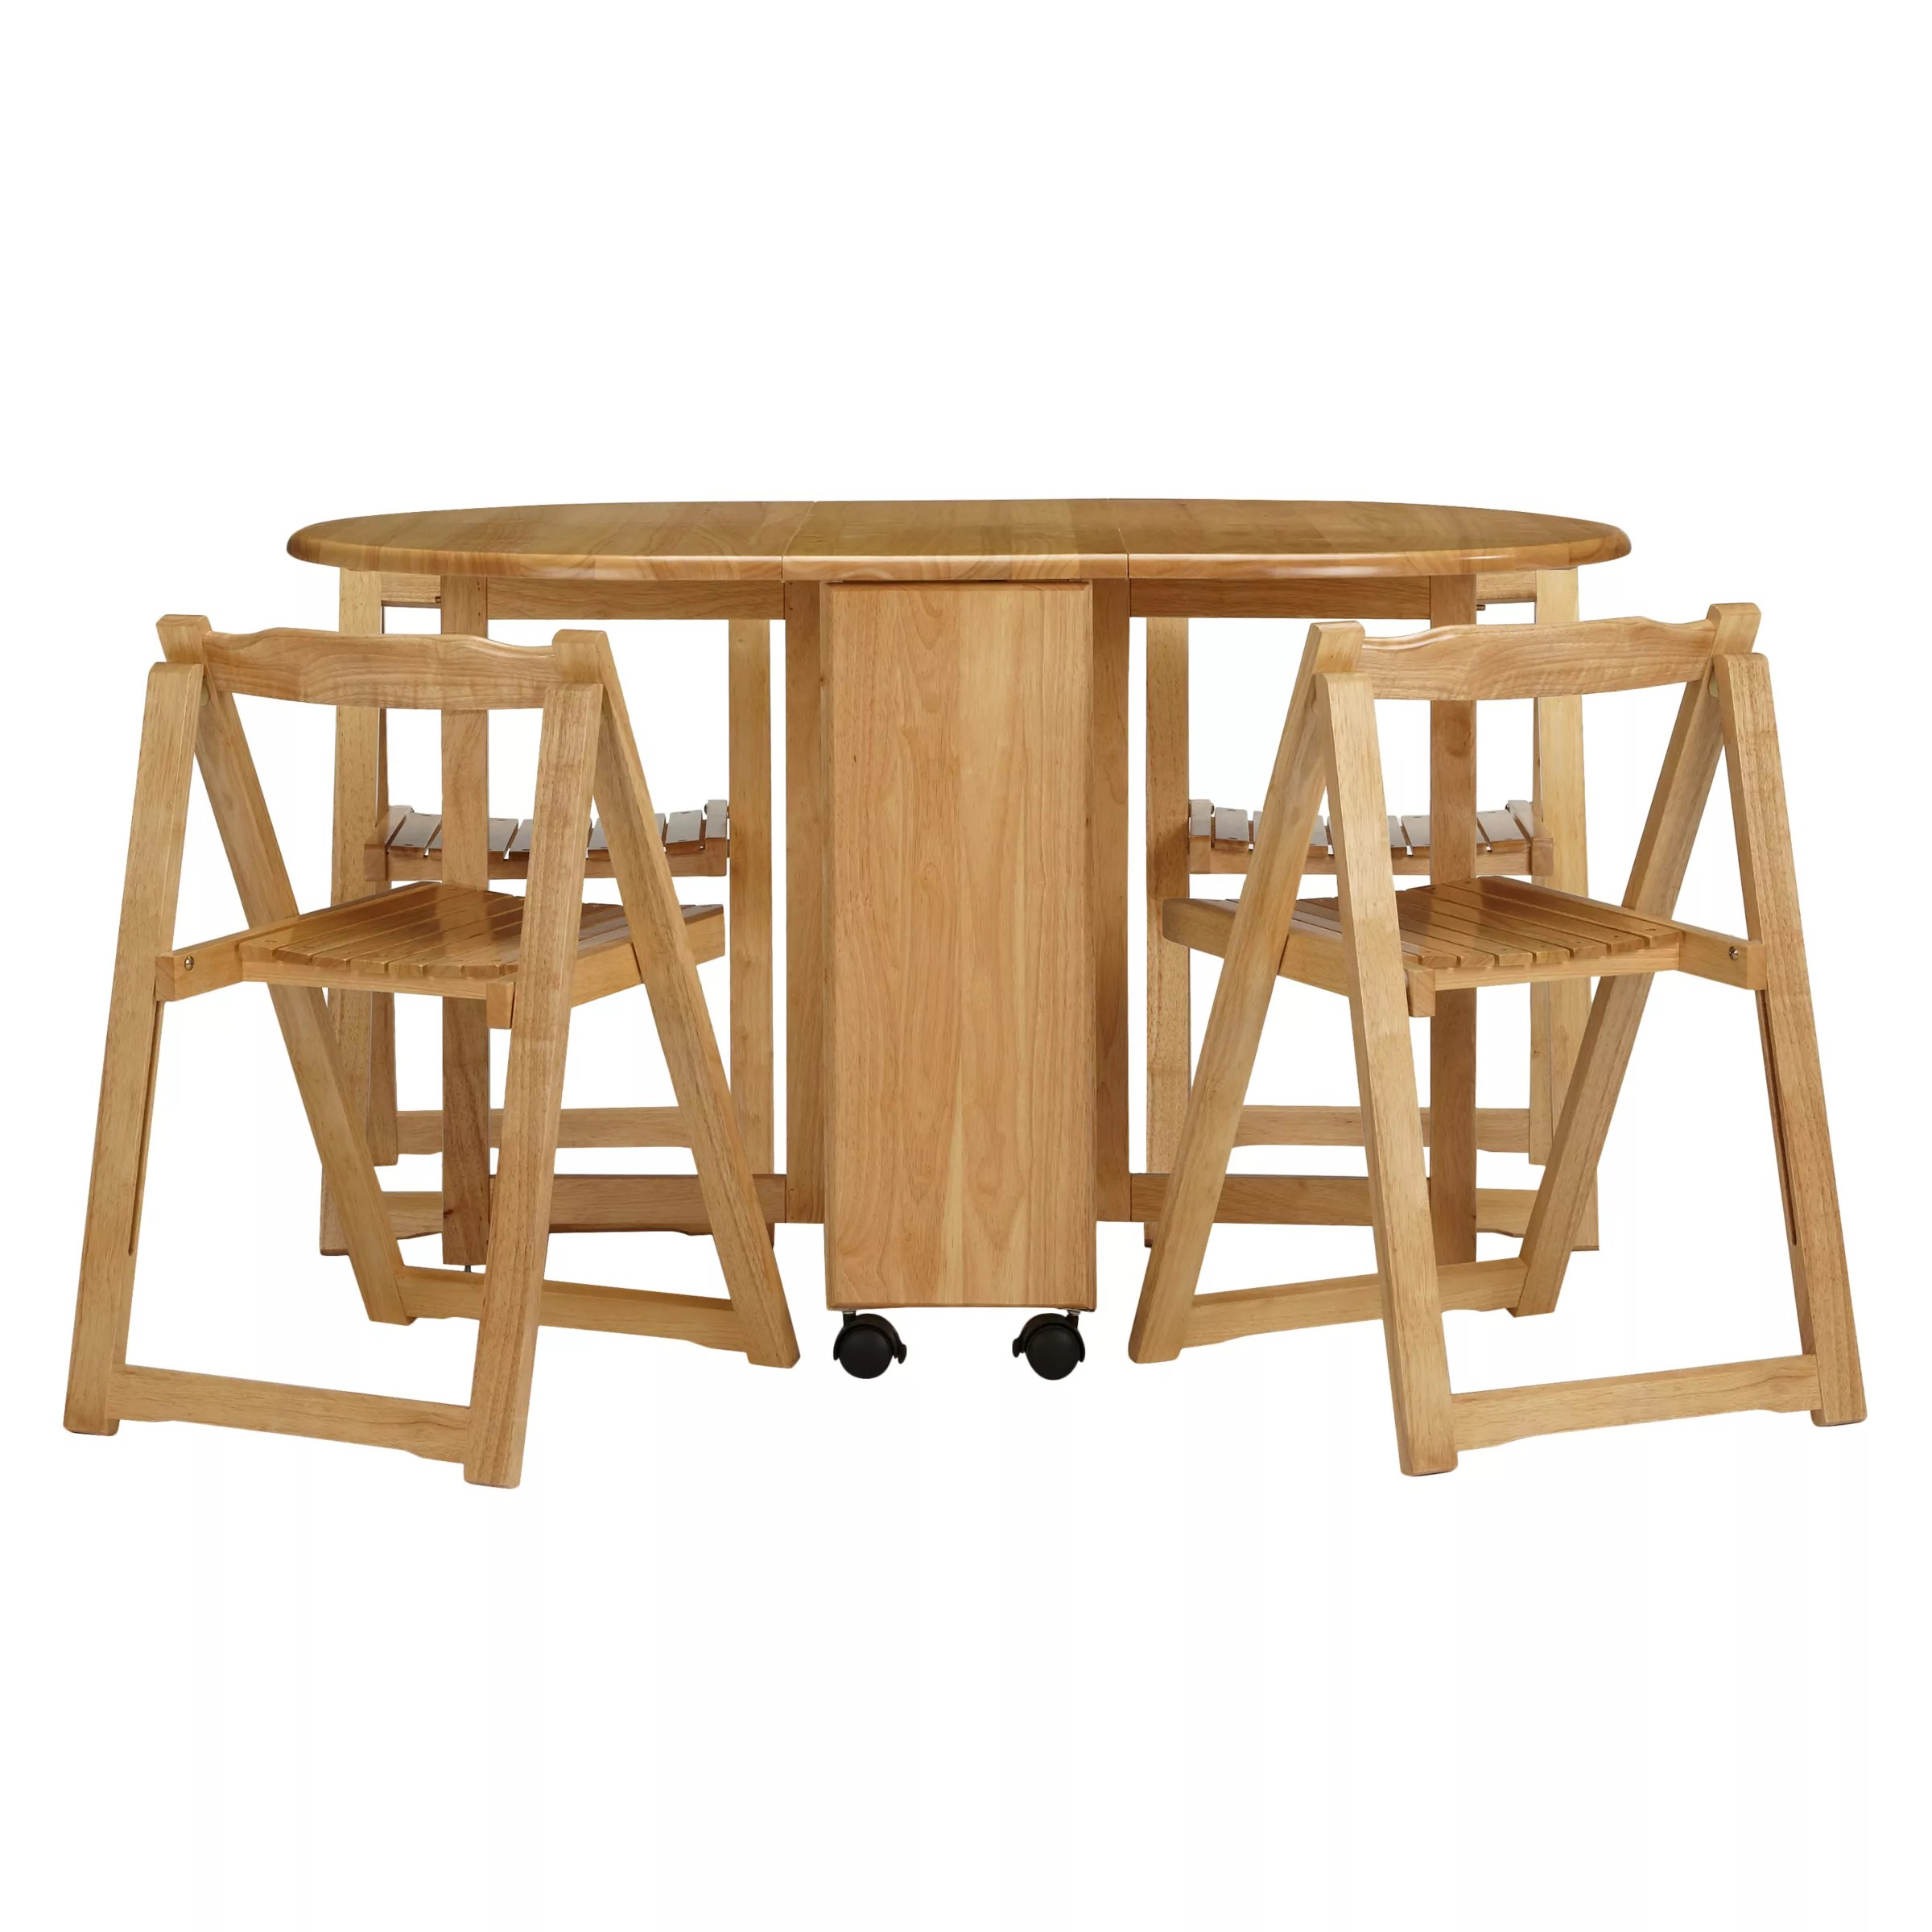 Drop Leaf Table With Chairs Buy John Lewis Butterfly Drop Leaf Folding Dining Table